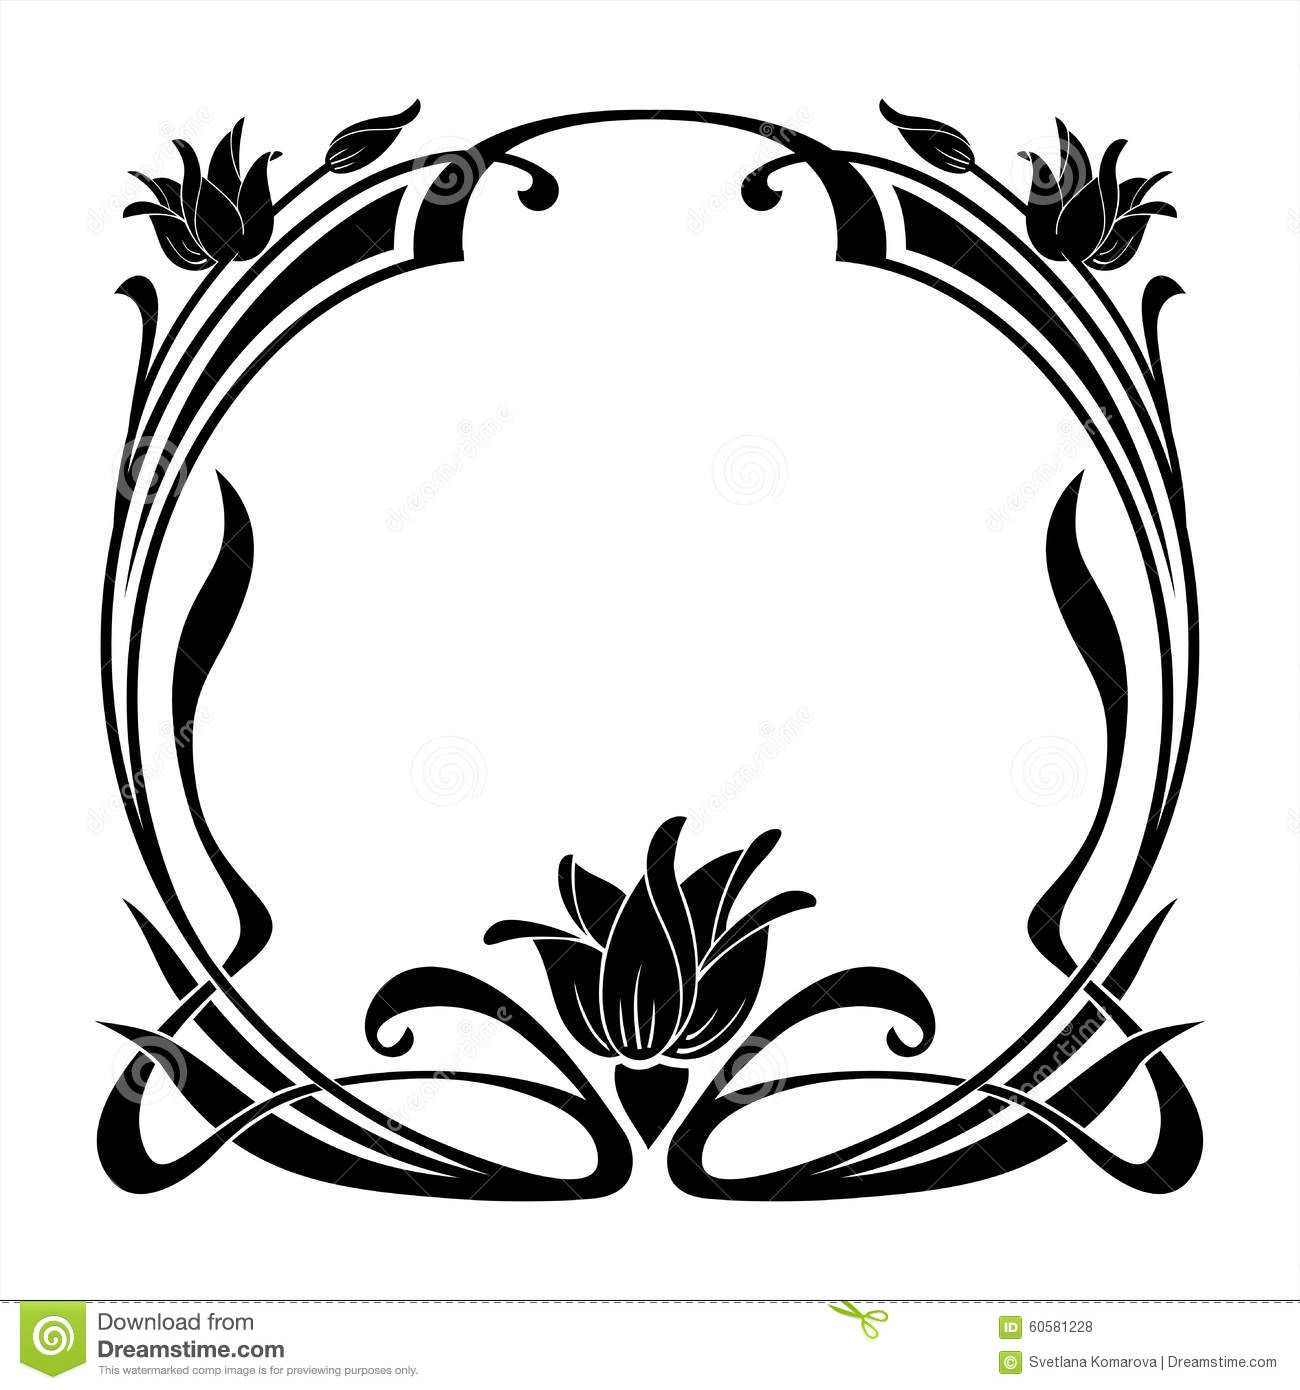 Round frame with decorative branch vector illustration stock - Round Decorative Floral Frame In The Art Nouveau Style Stock